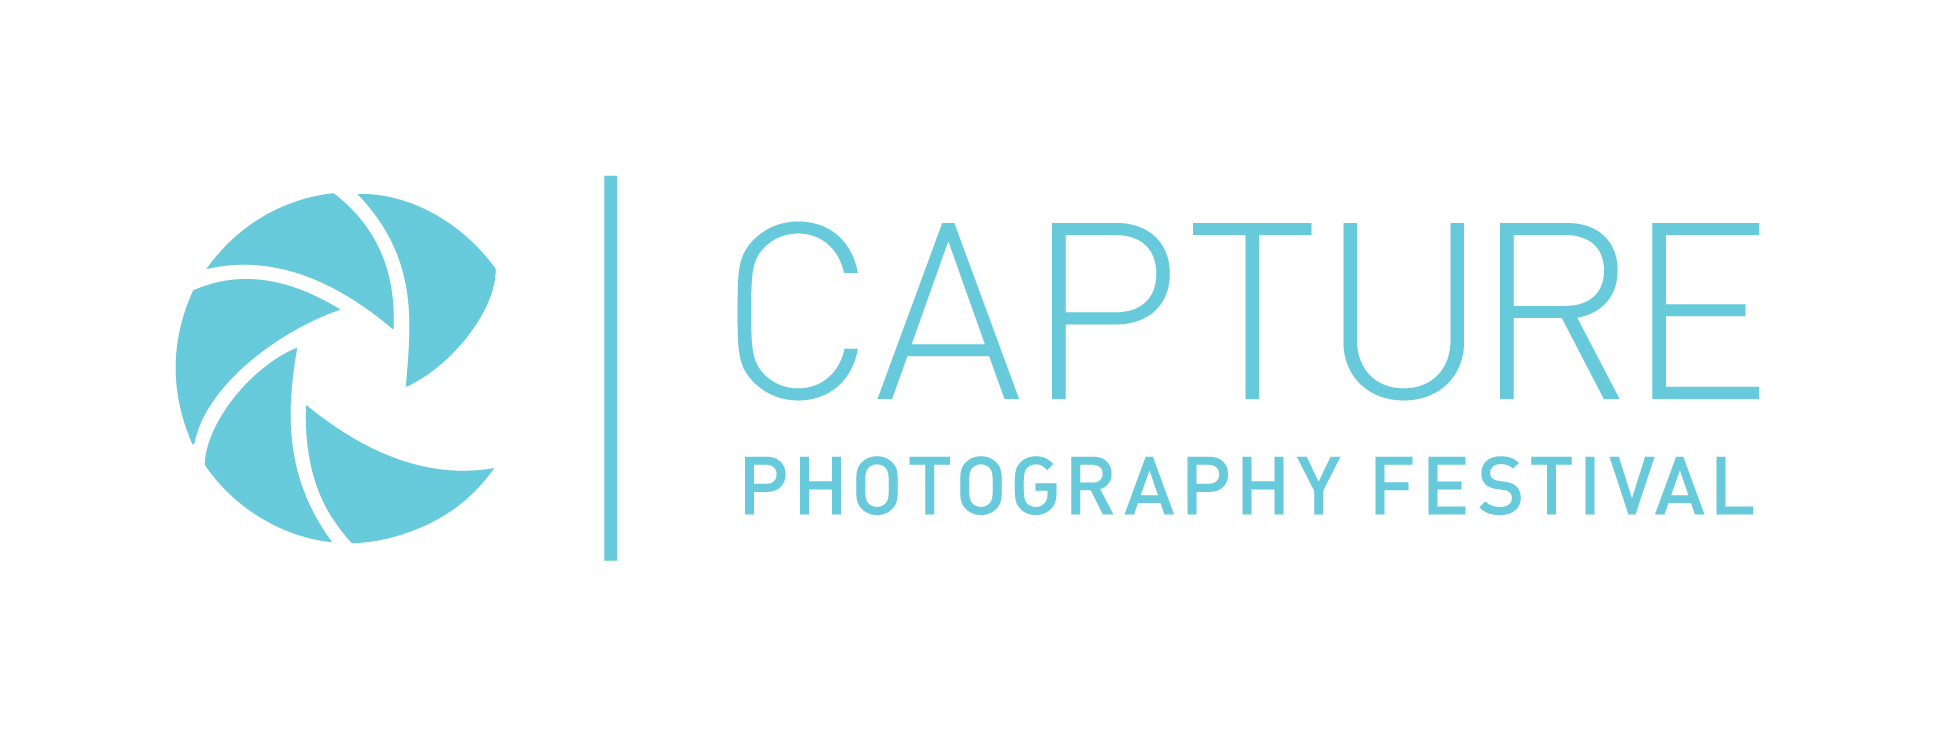 BAG-Capture-Photography-Logo (1).jpg